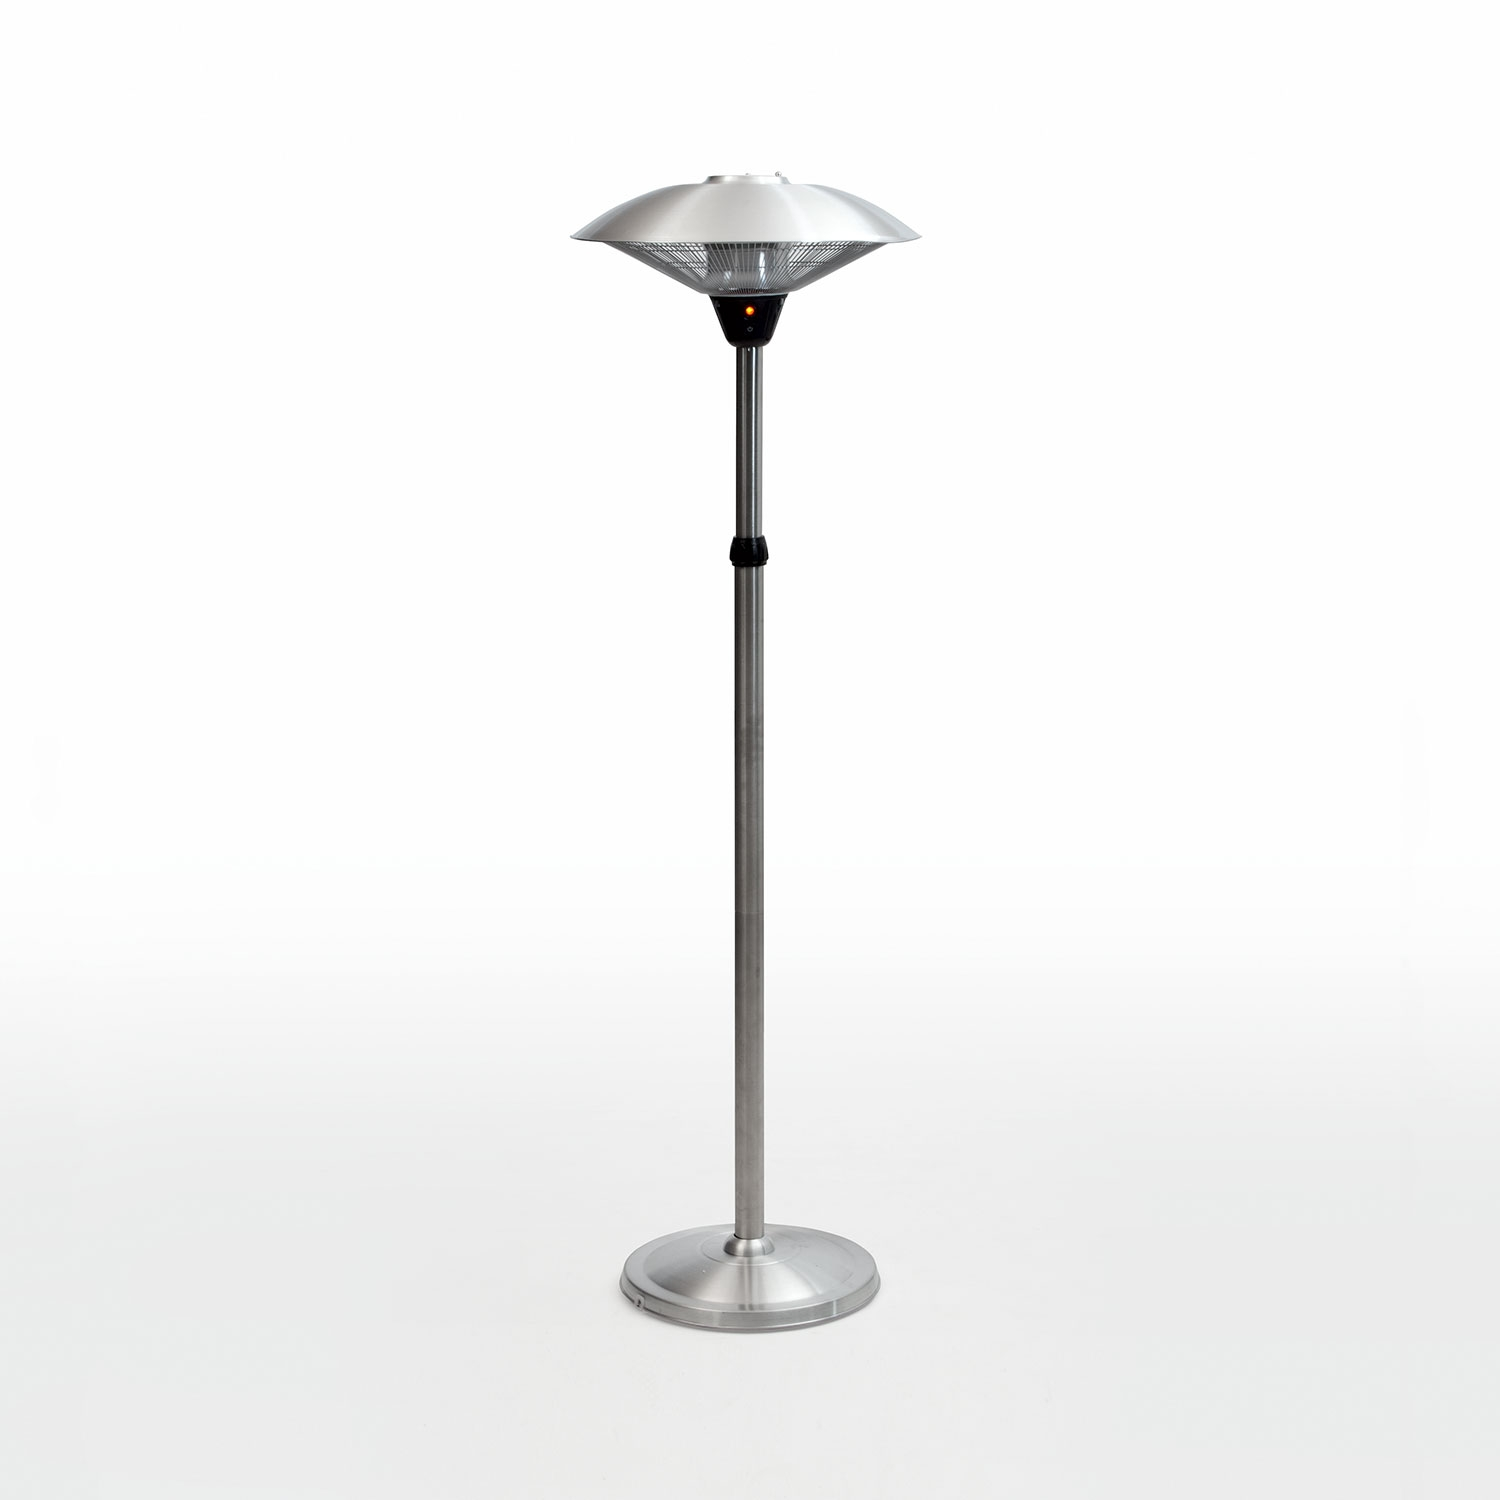 Image of 2.1m Stainless Steel Double Halogen Patio Heater